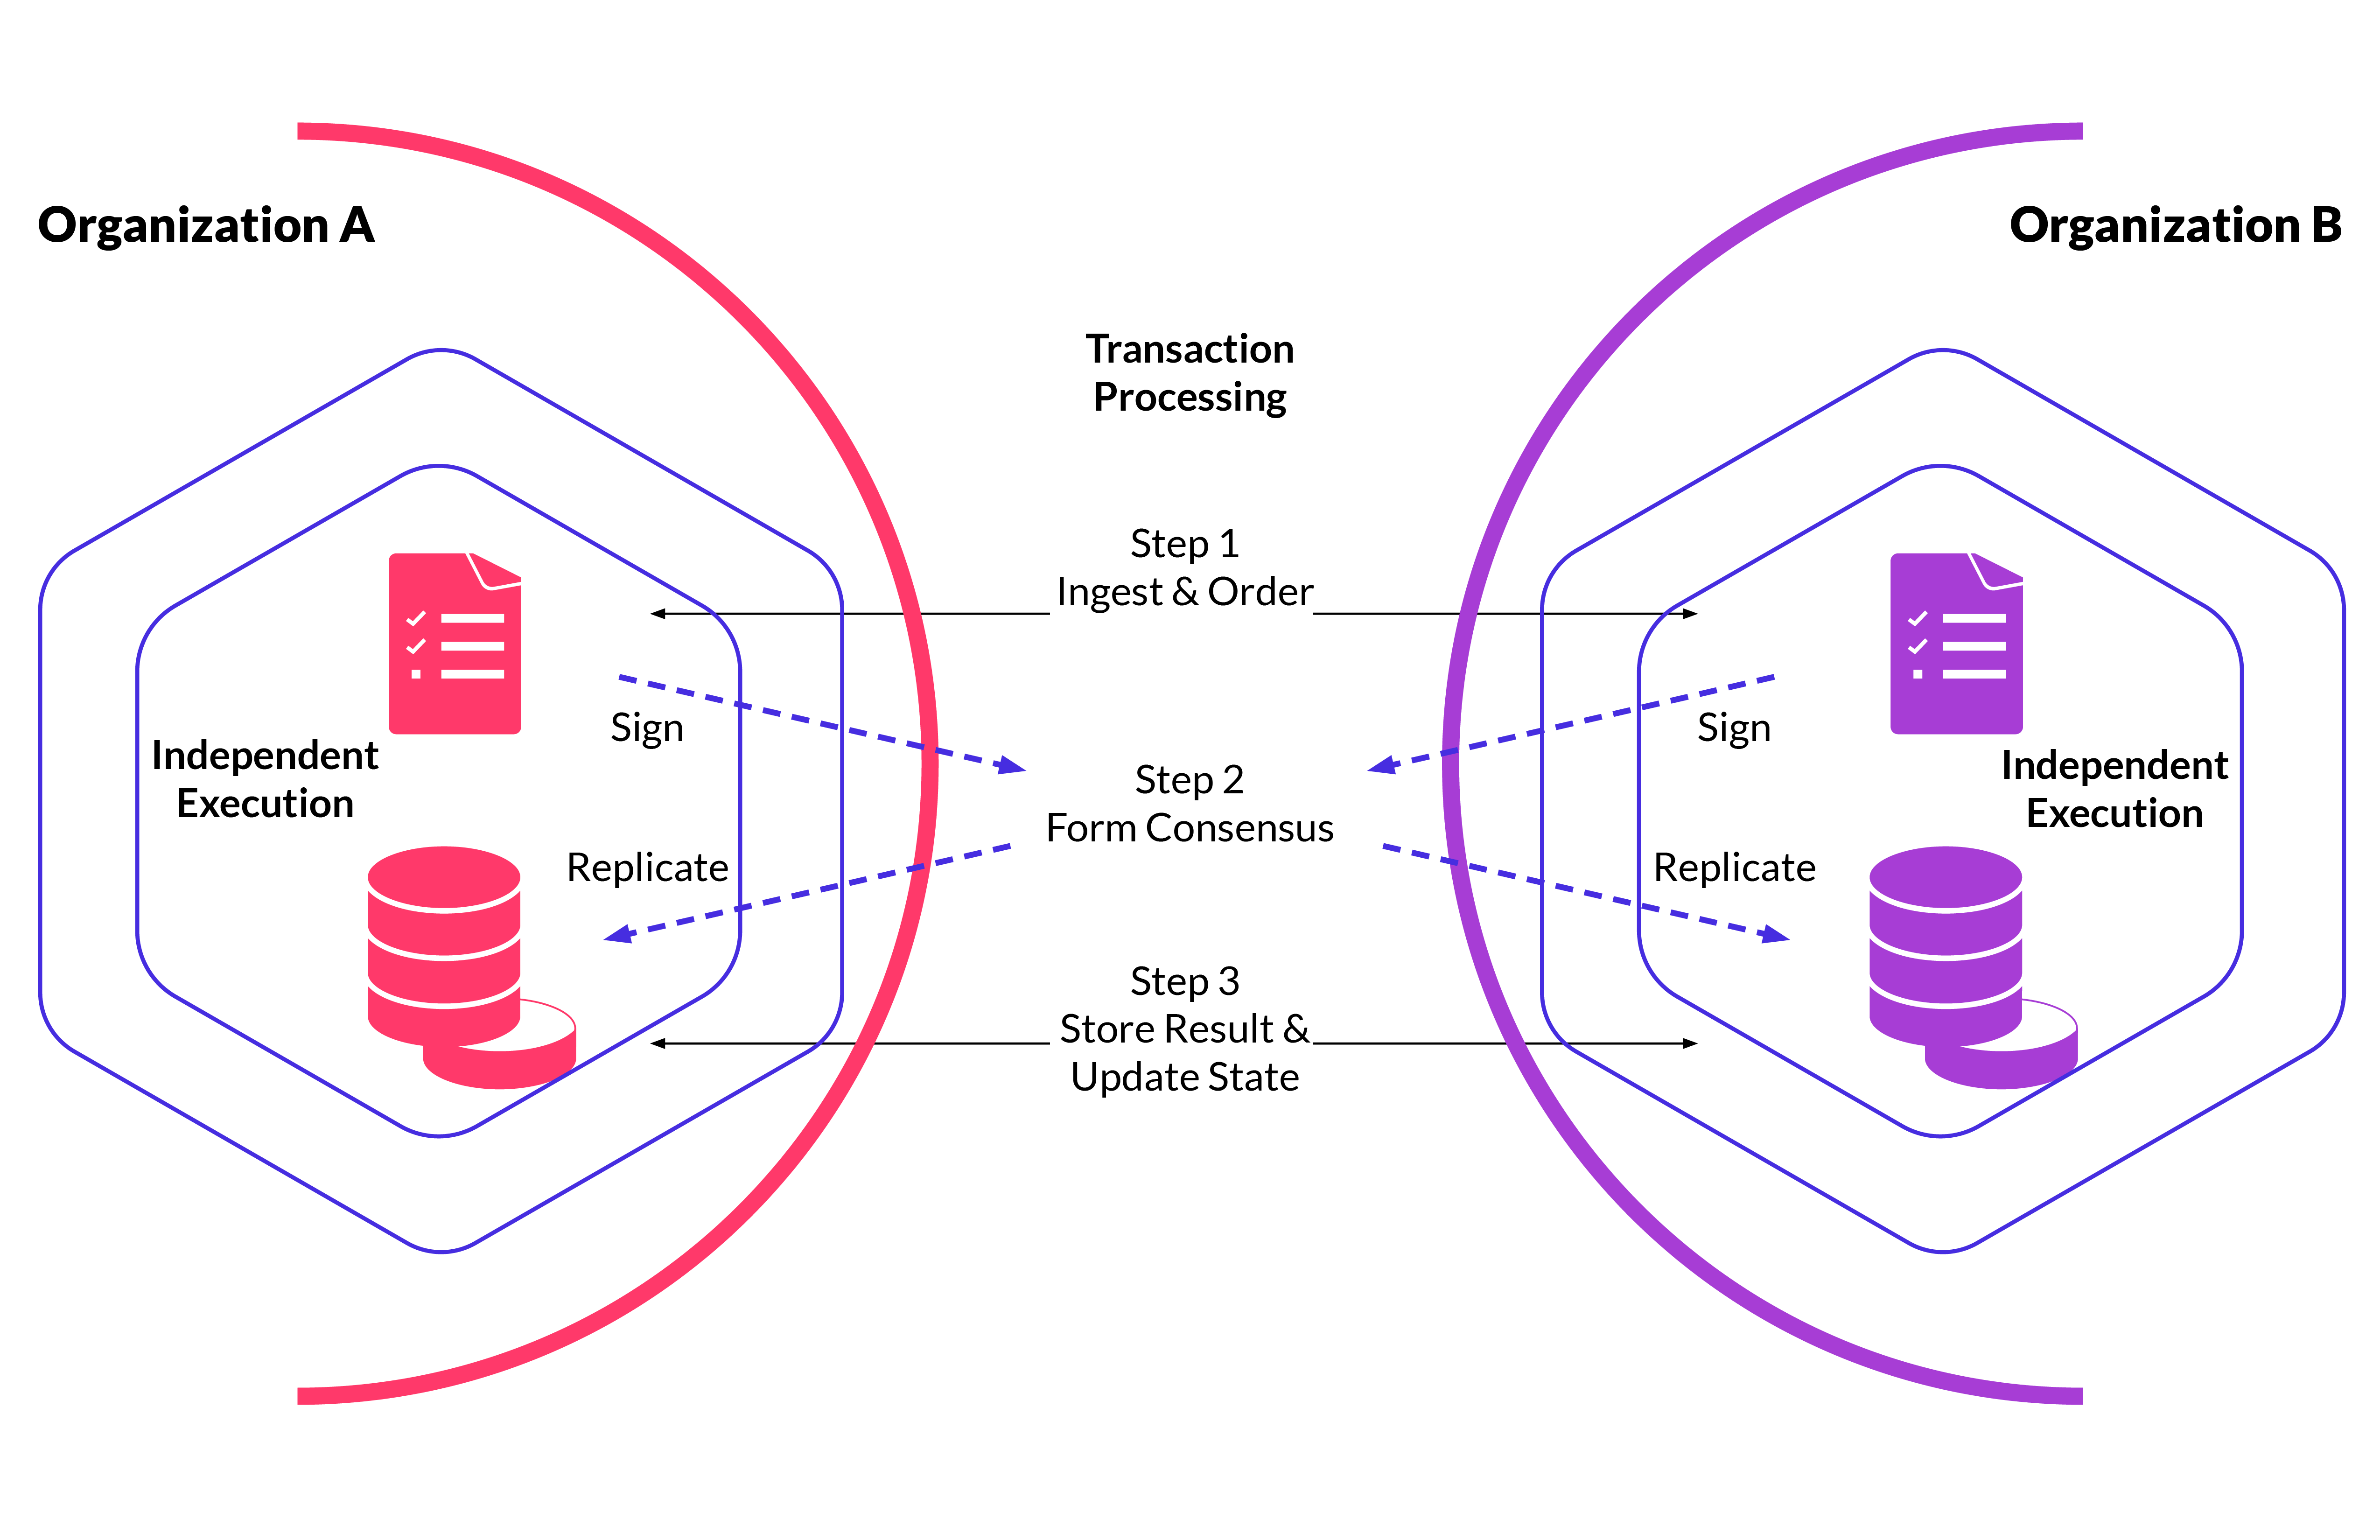 Illustration showing how blockchain powers Transactional decentralization for business to business transactions